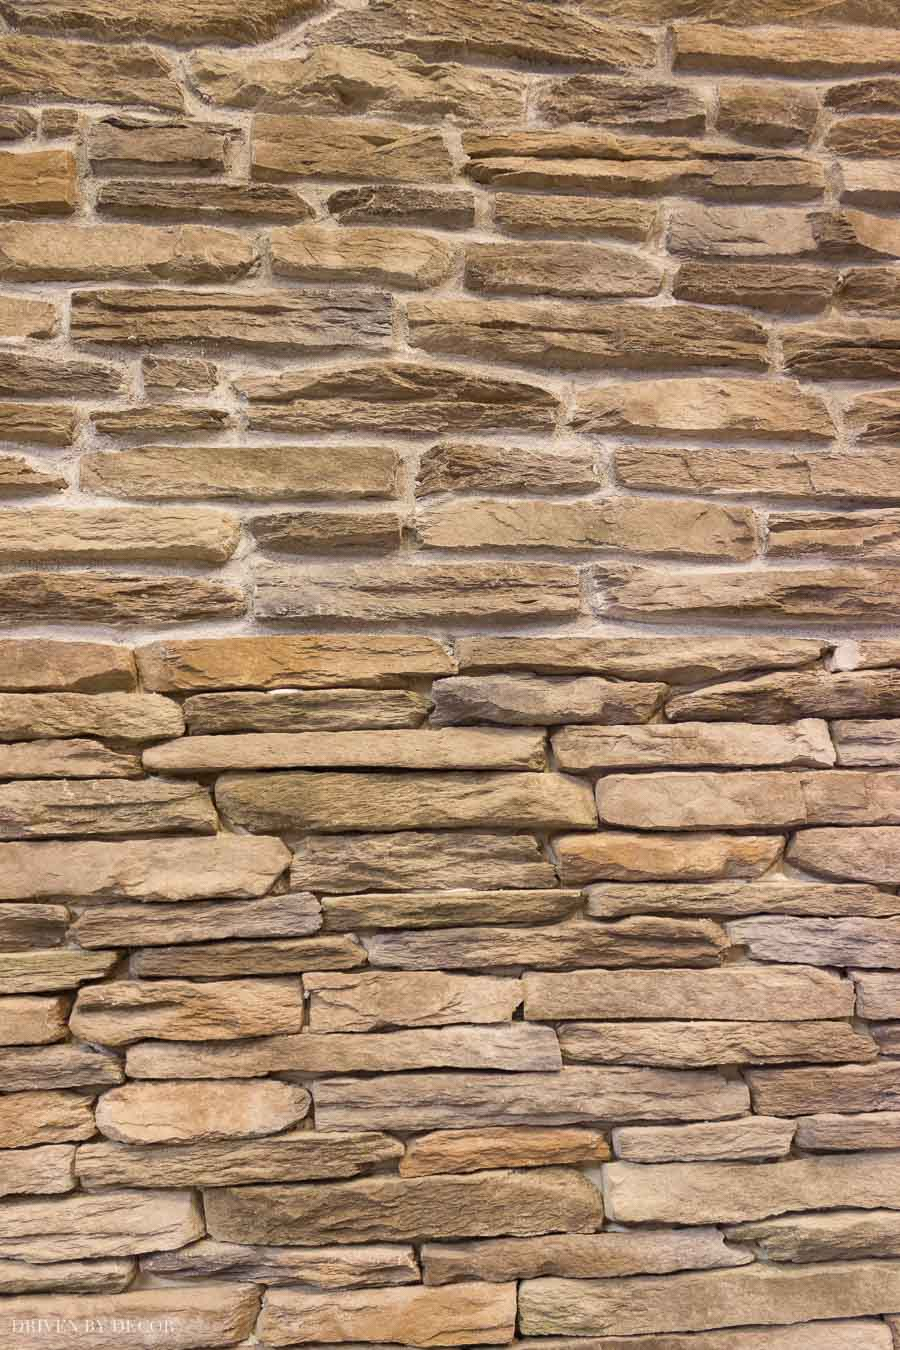 Great example of stacked stone both with and without (dry stacked) mortar